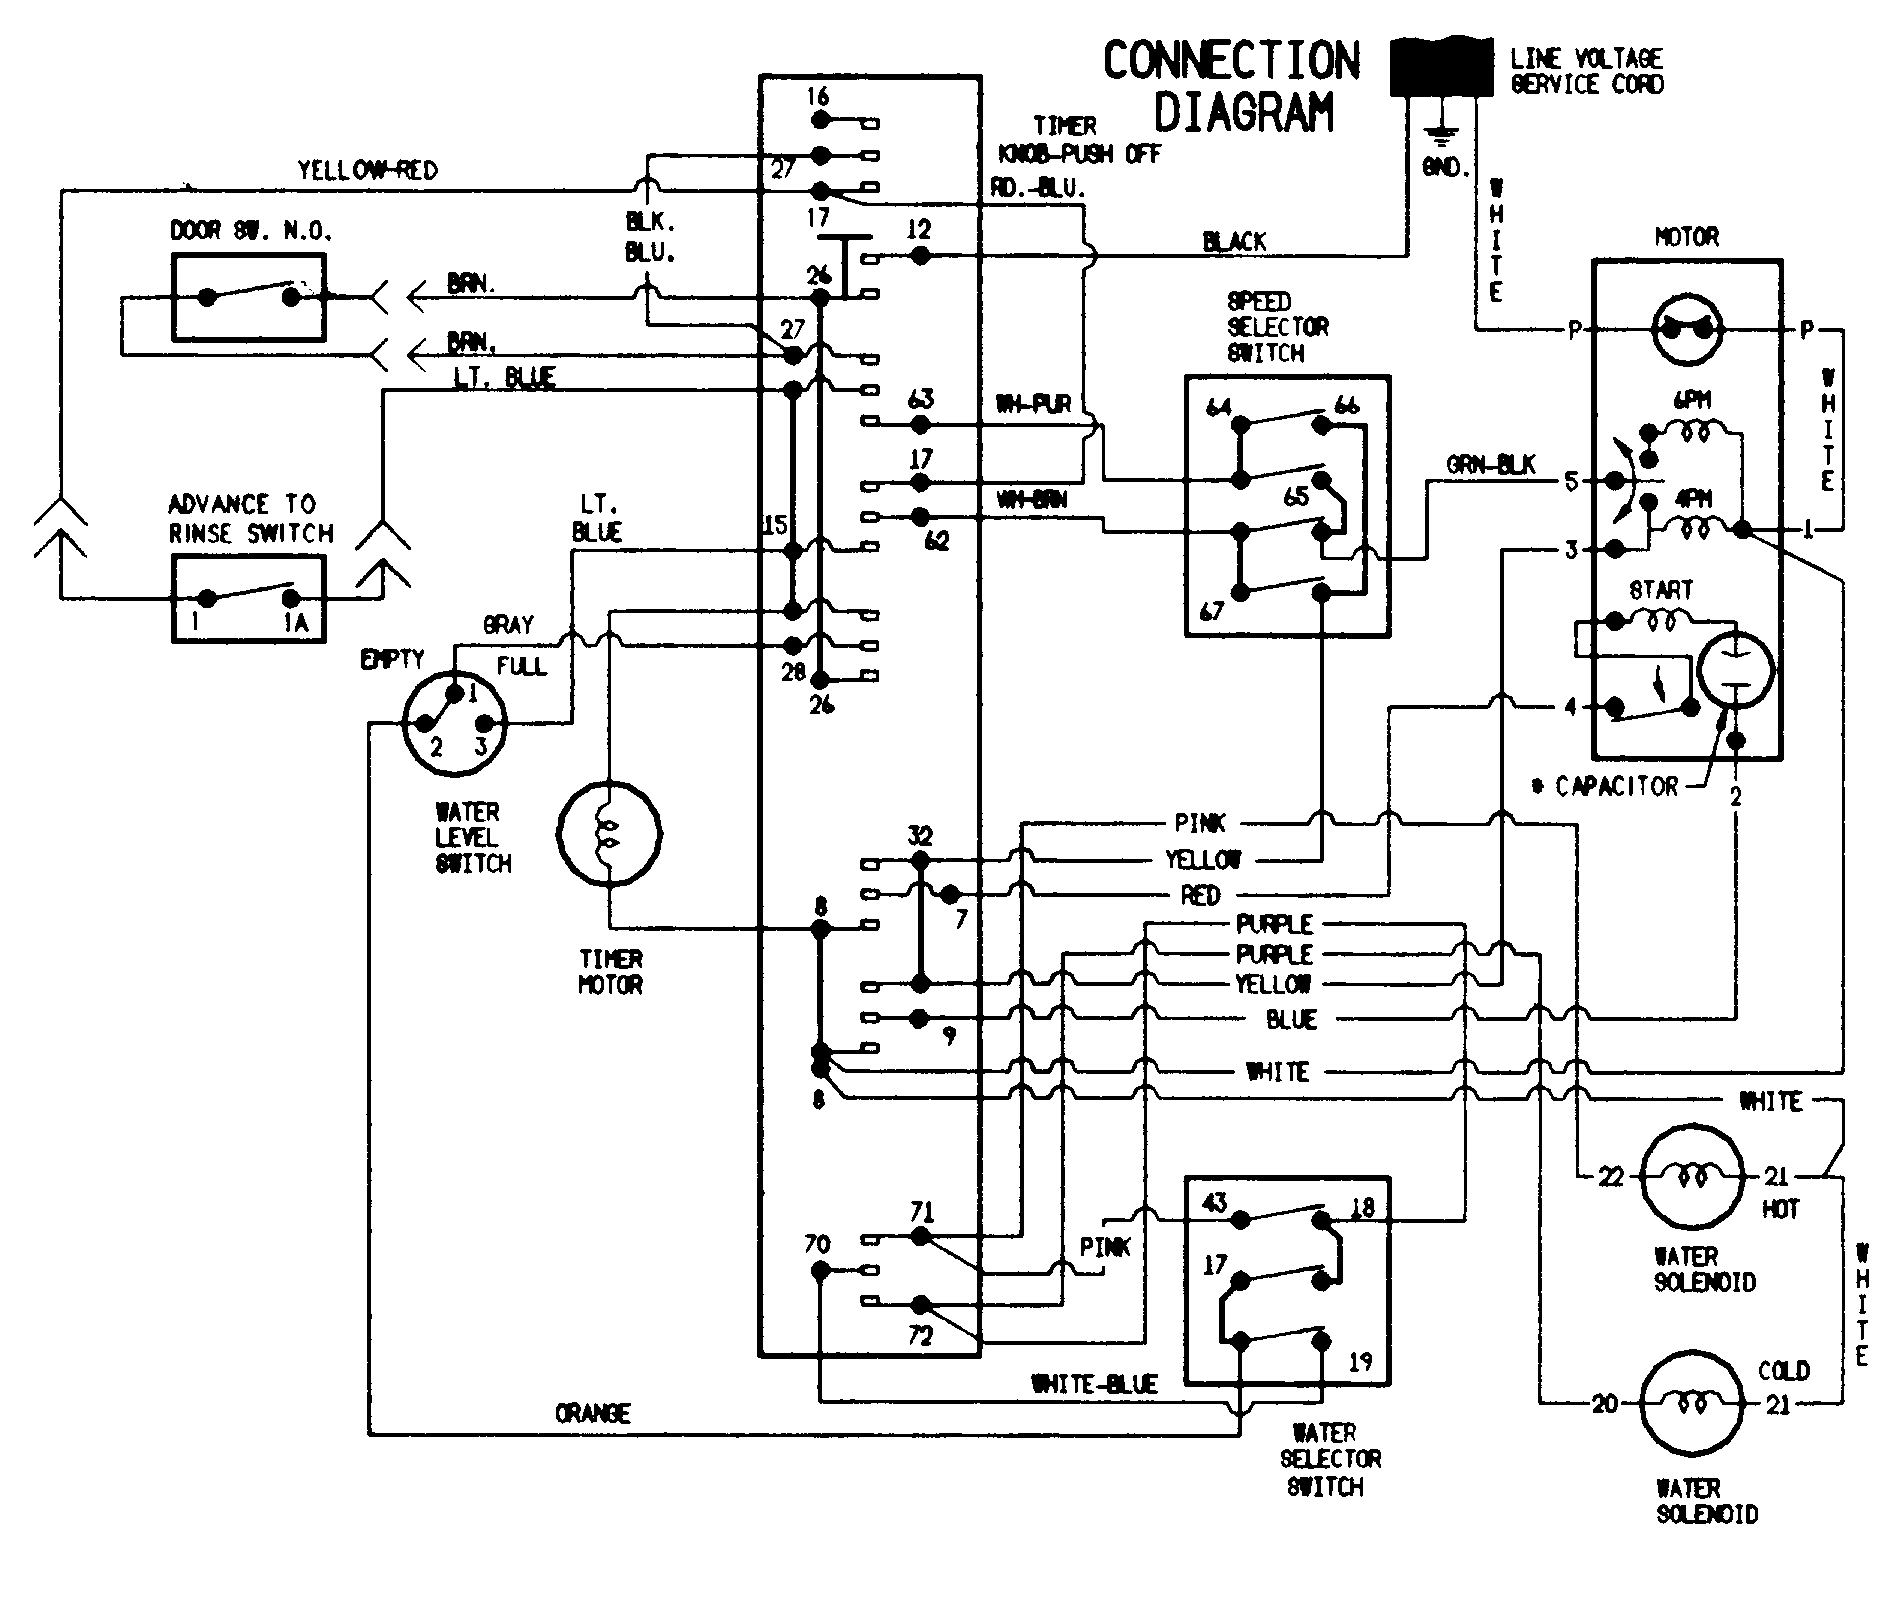 whirlpool washer control board wiring diagram